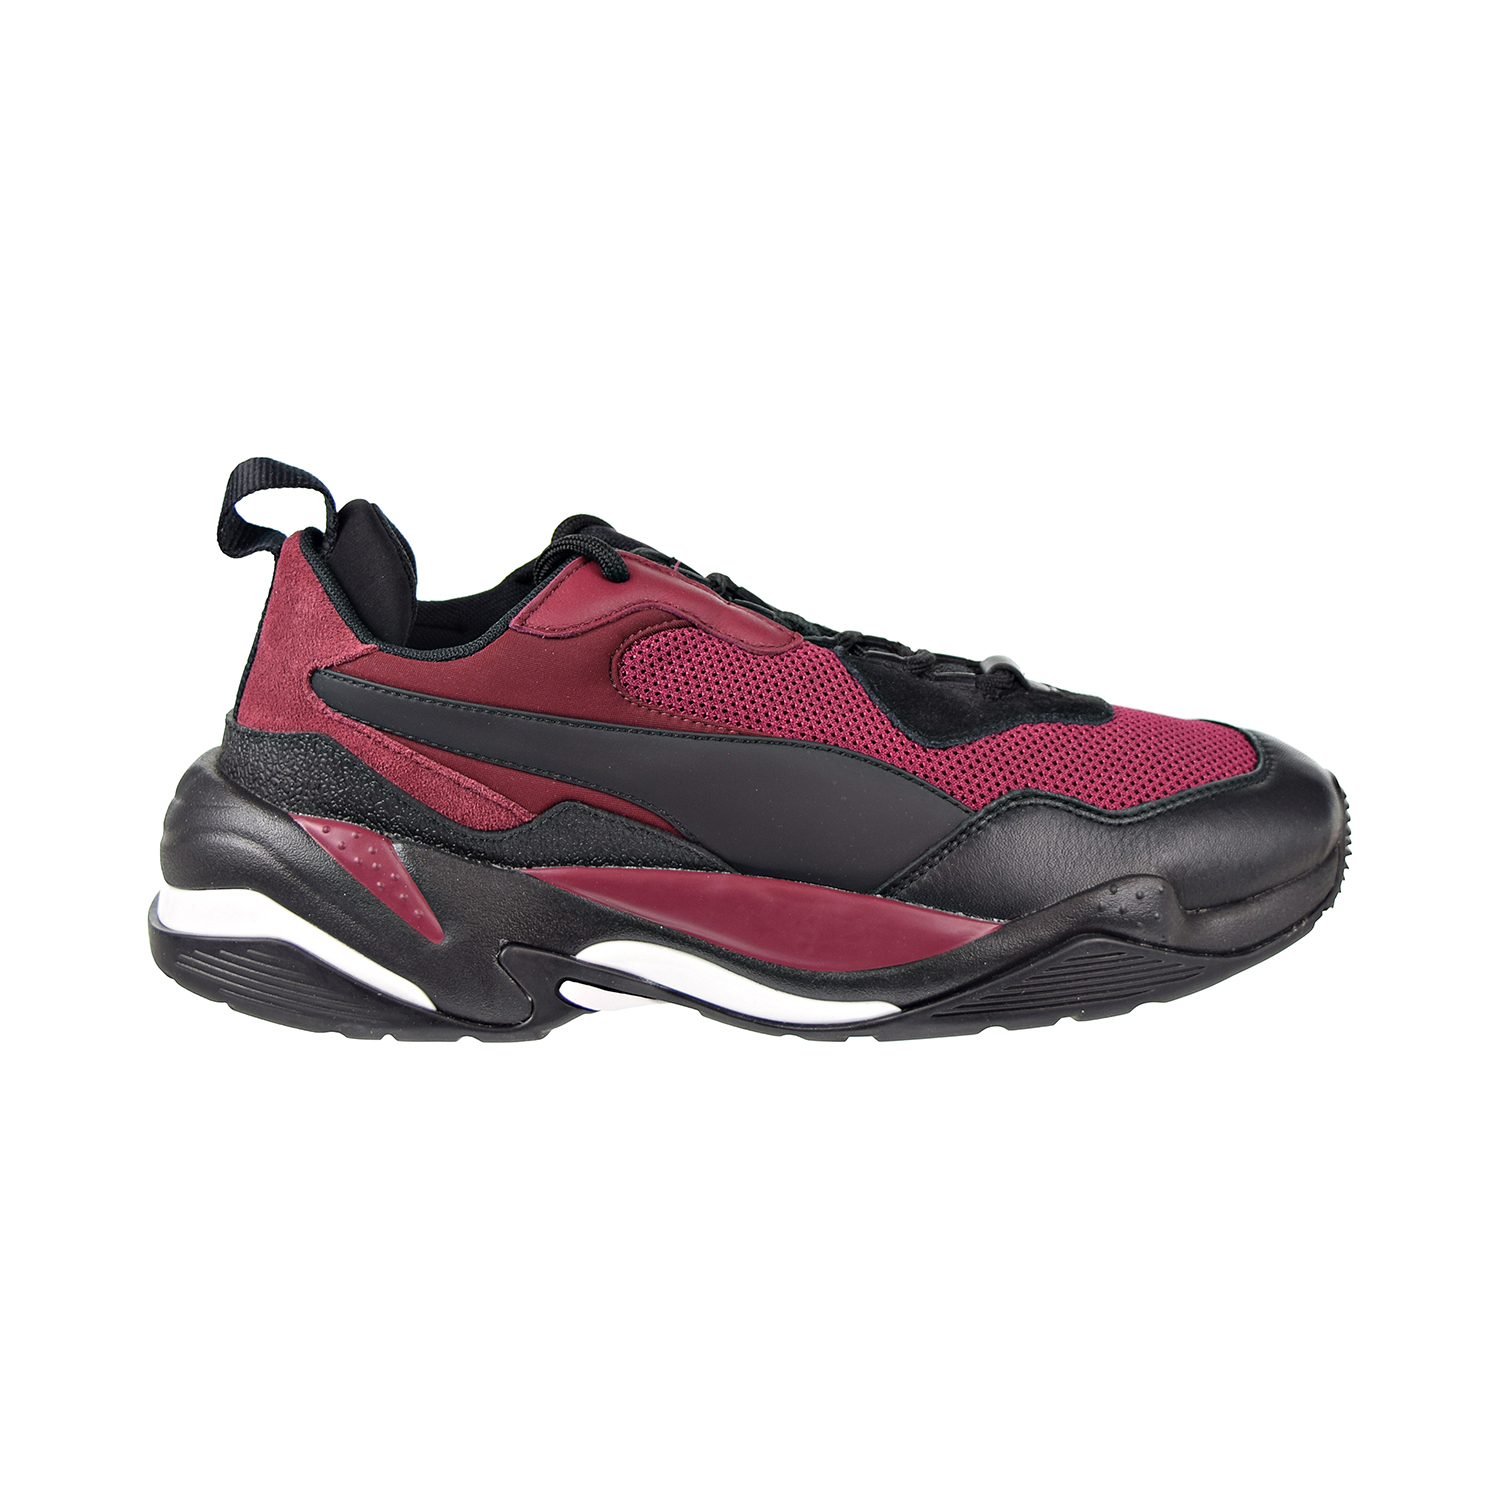 Puma Thunder Spectra Men's Shoes RhododendronBlackT Port